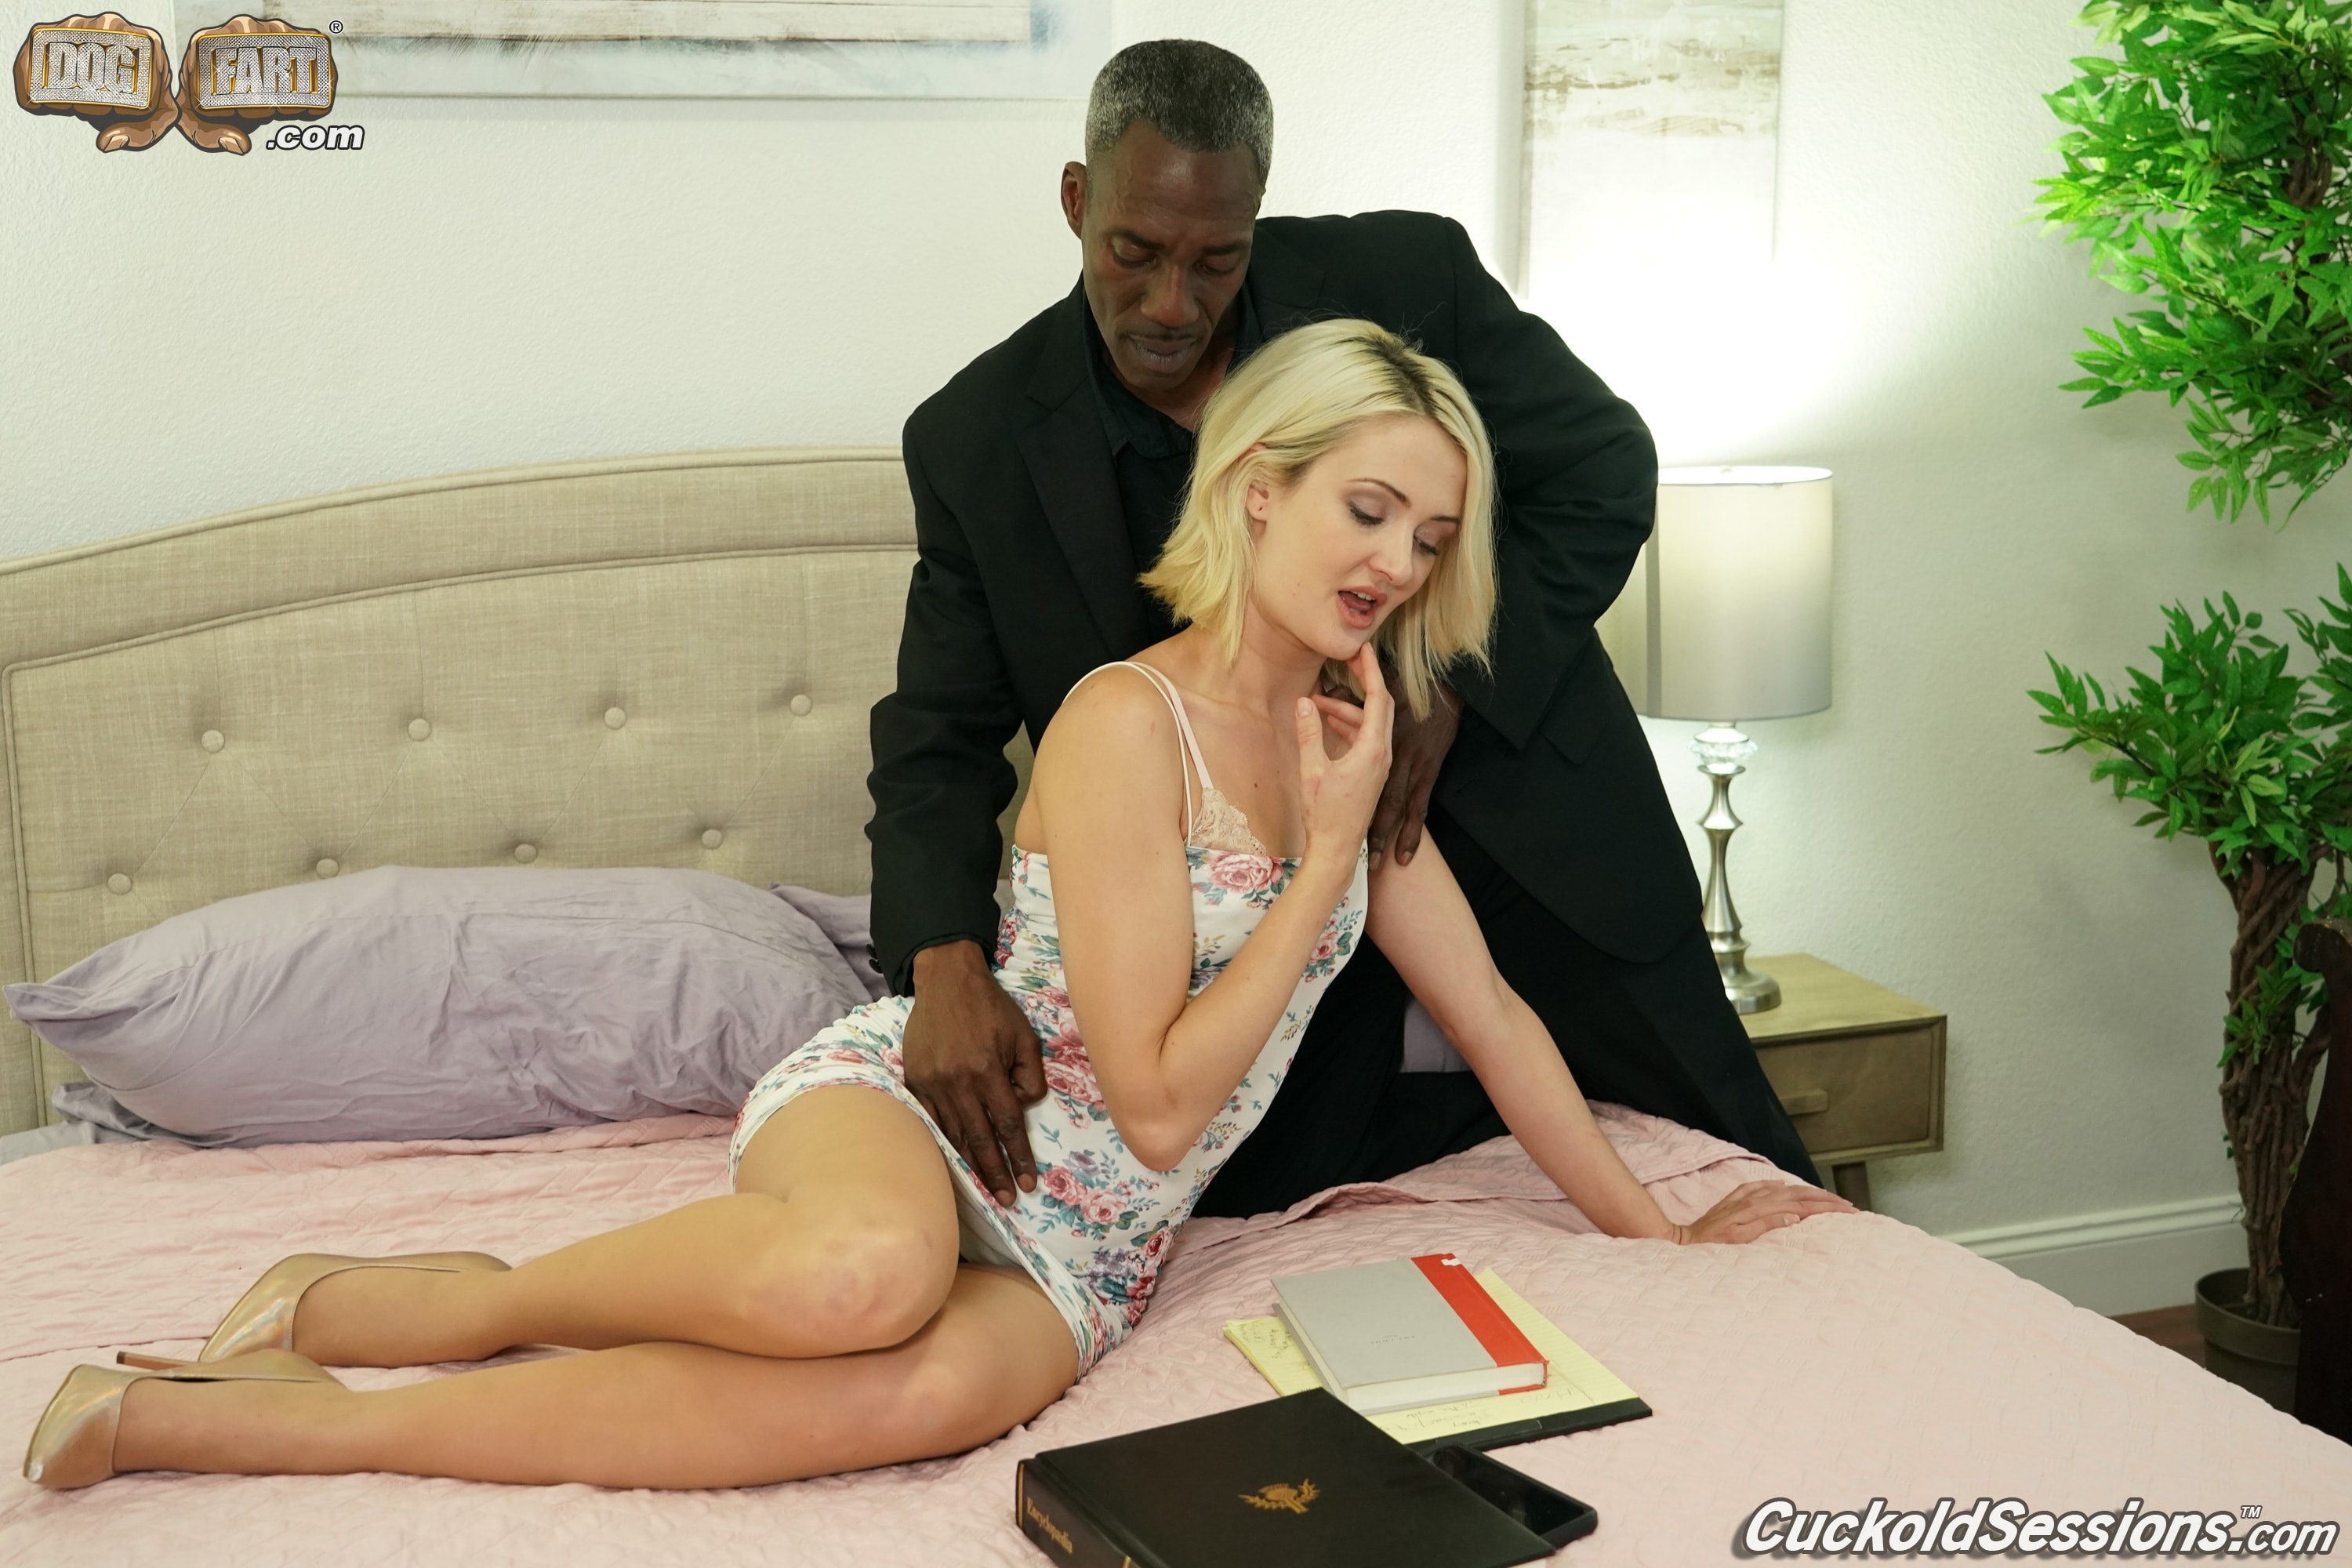 Dogfart '- Cuckold Sessions' starring Zoe Sparx (Photo 12)